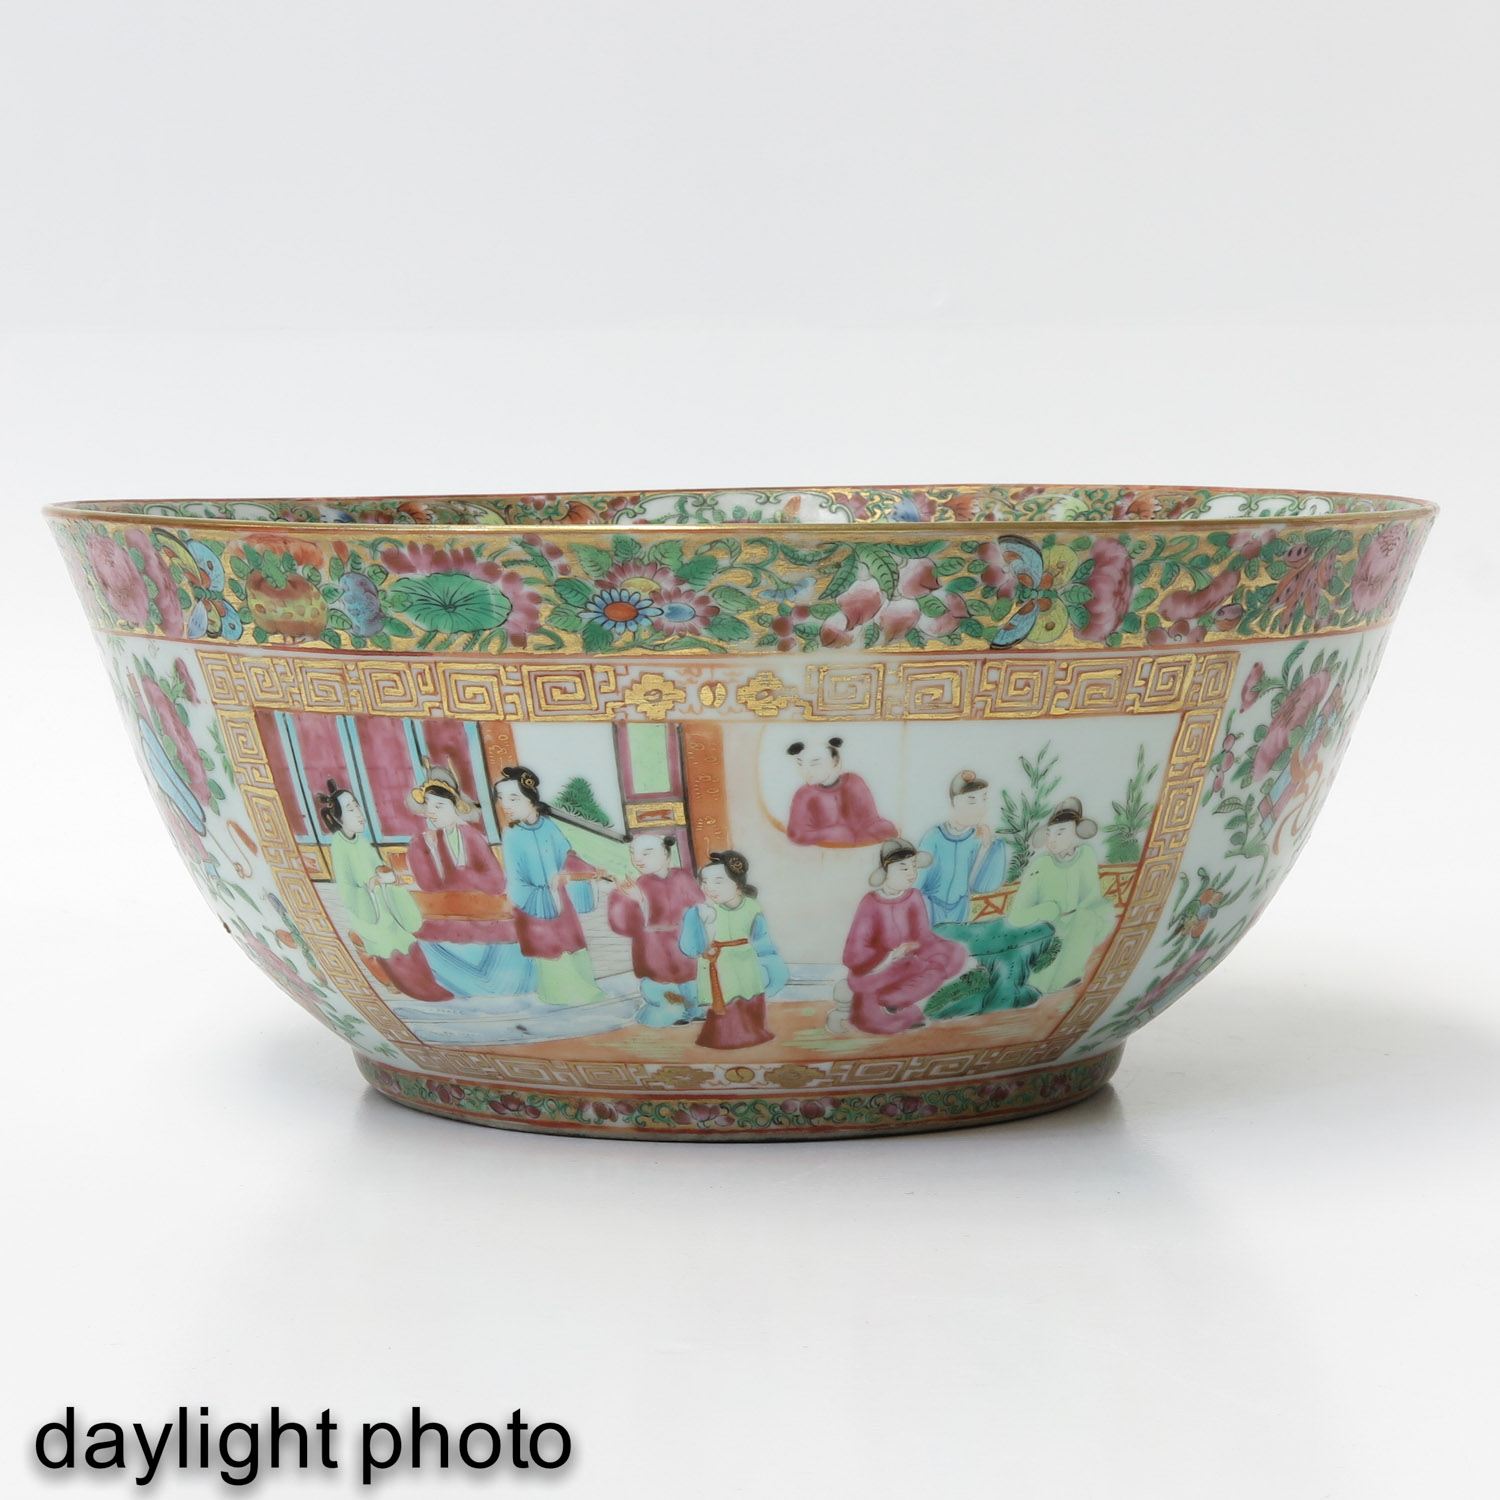 A Cantonese Bowl - Image 7 of 10